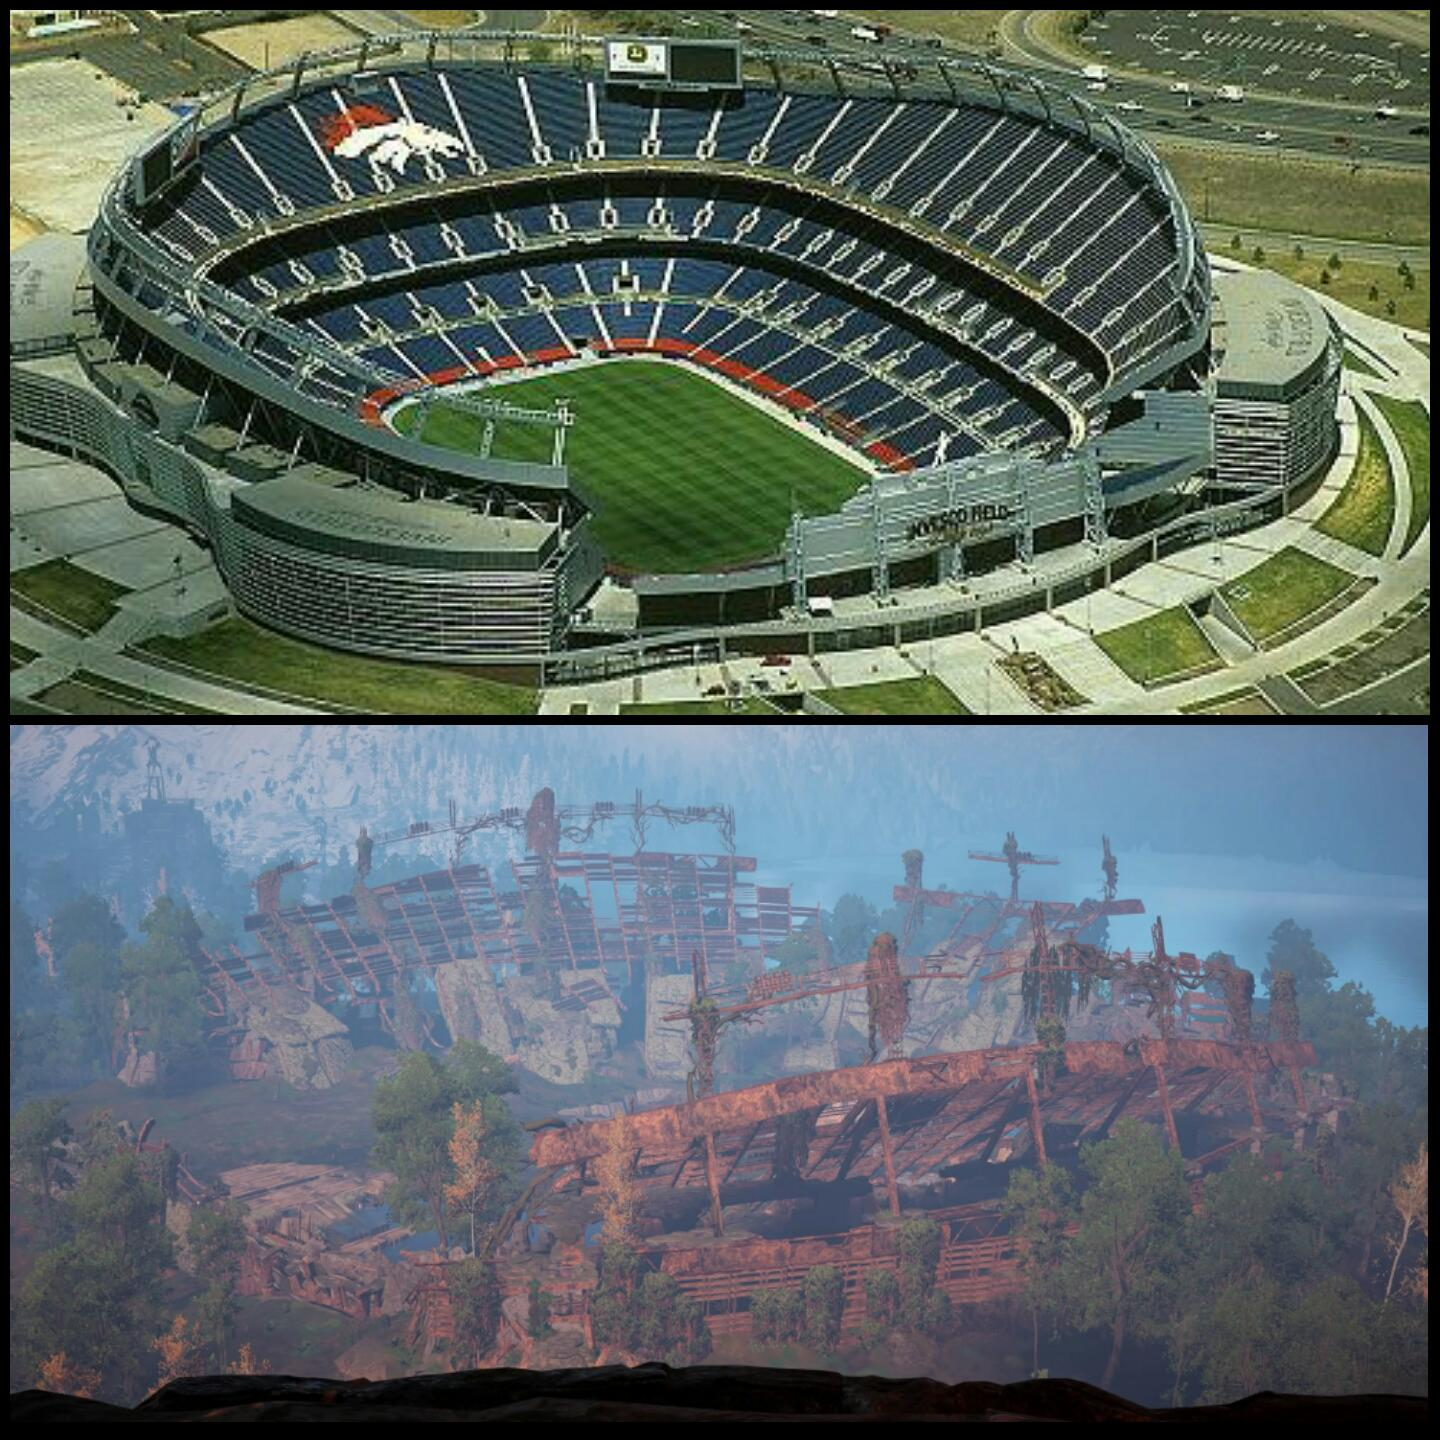 Horizon Zero Dawn Real Life Vs In Game Location Comparison